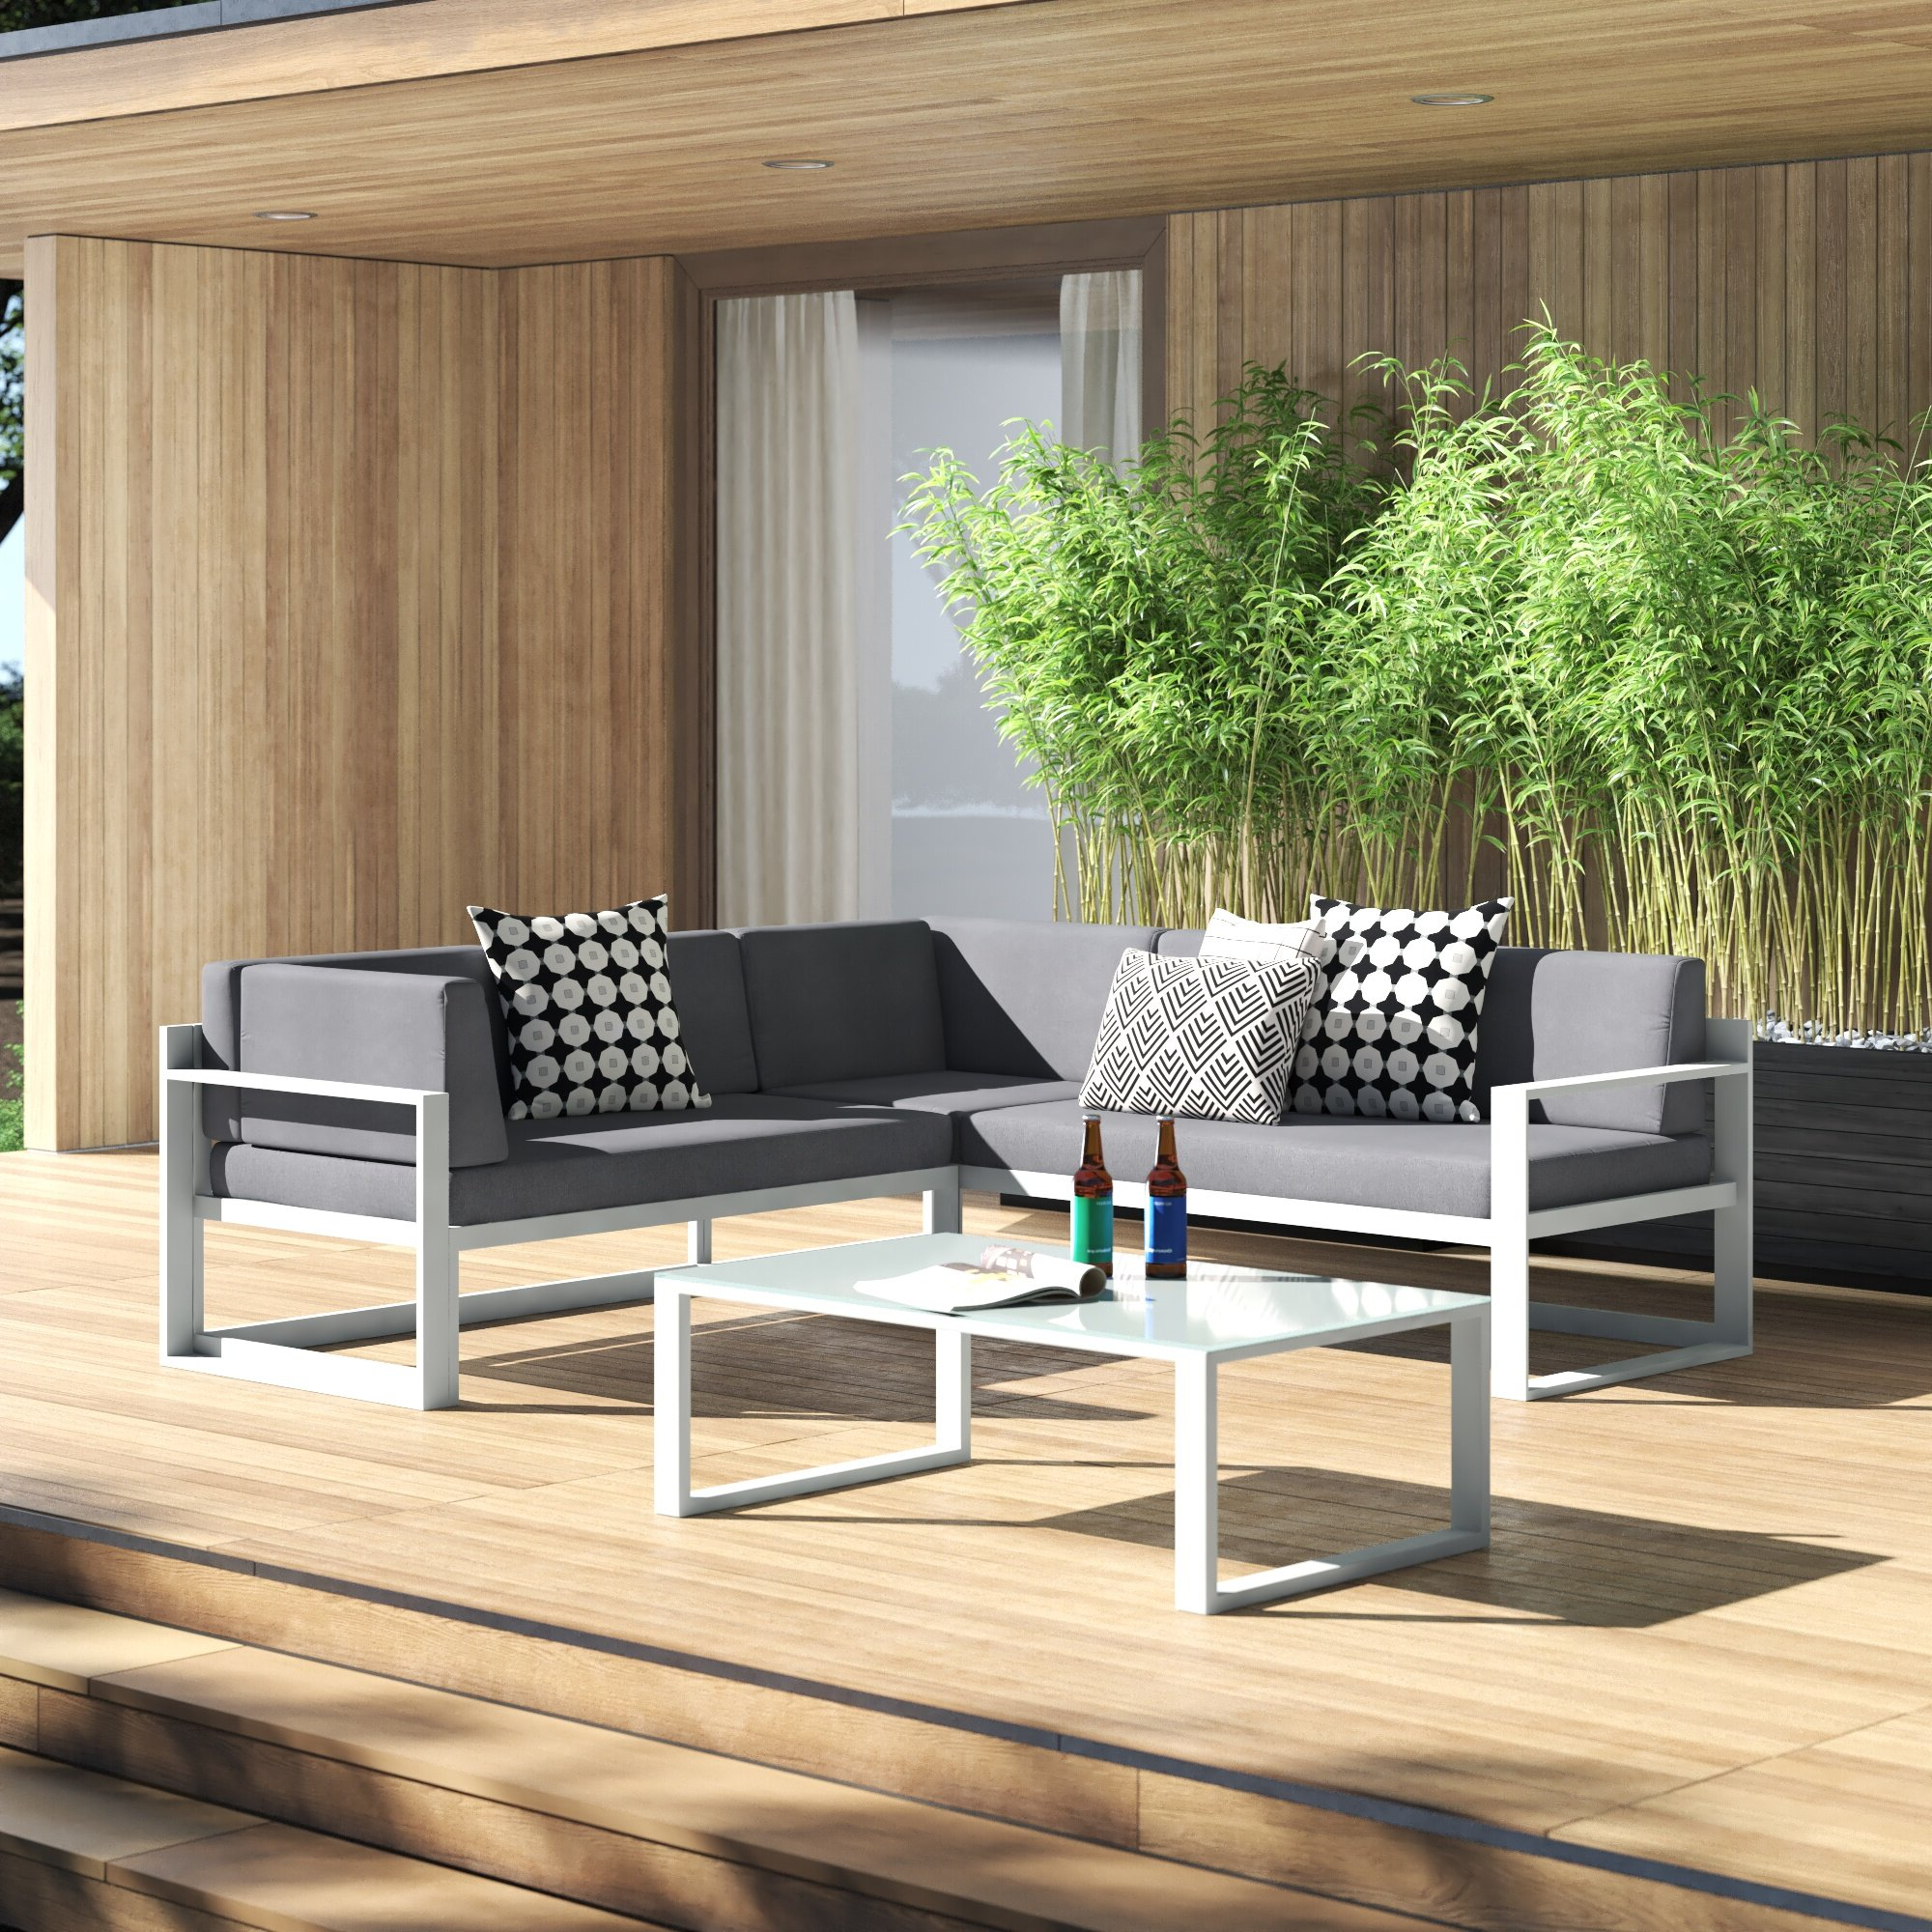 Most Up To Date Jimmie 3 Piece Sectional Seating Group With Cushions Within Jimmie 3 Piece Sectionals Seating Group With Cushions (Gallery 3 of 25)